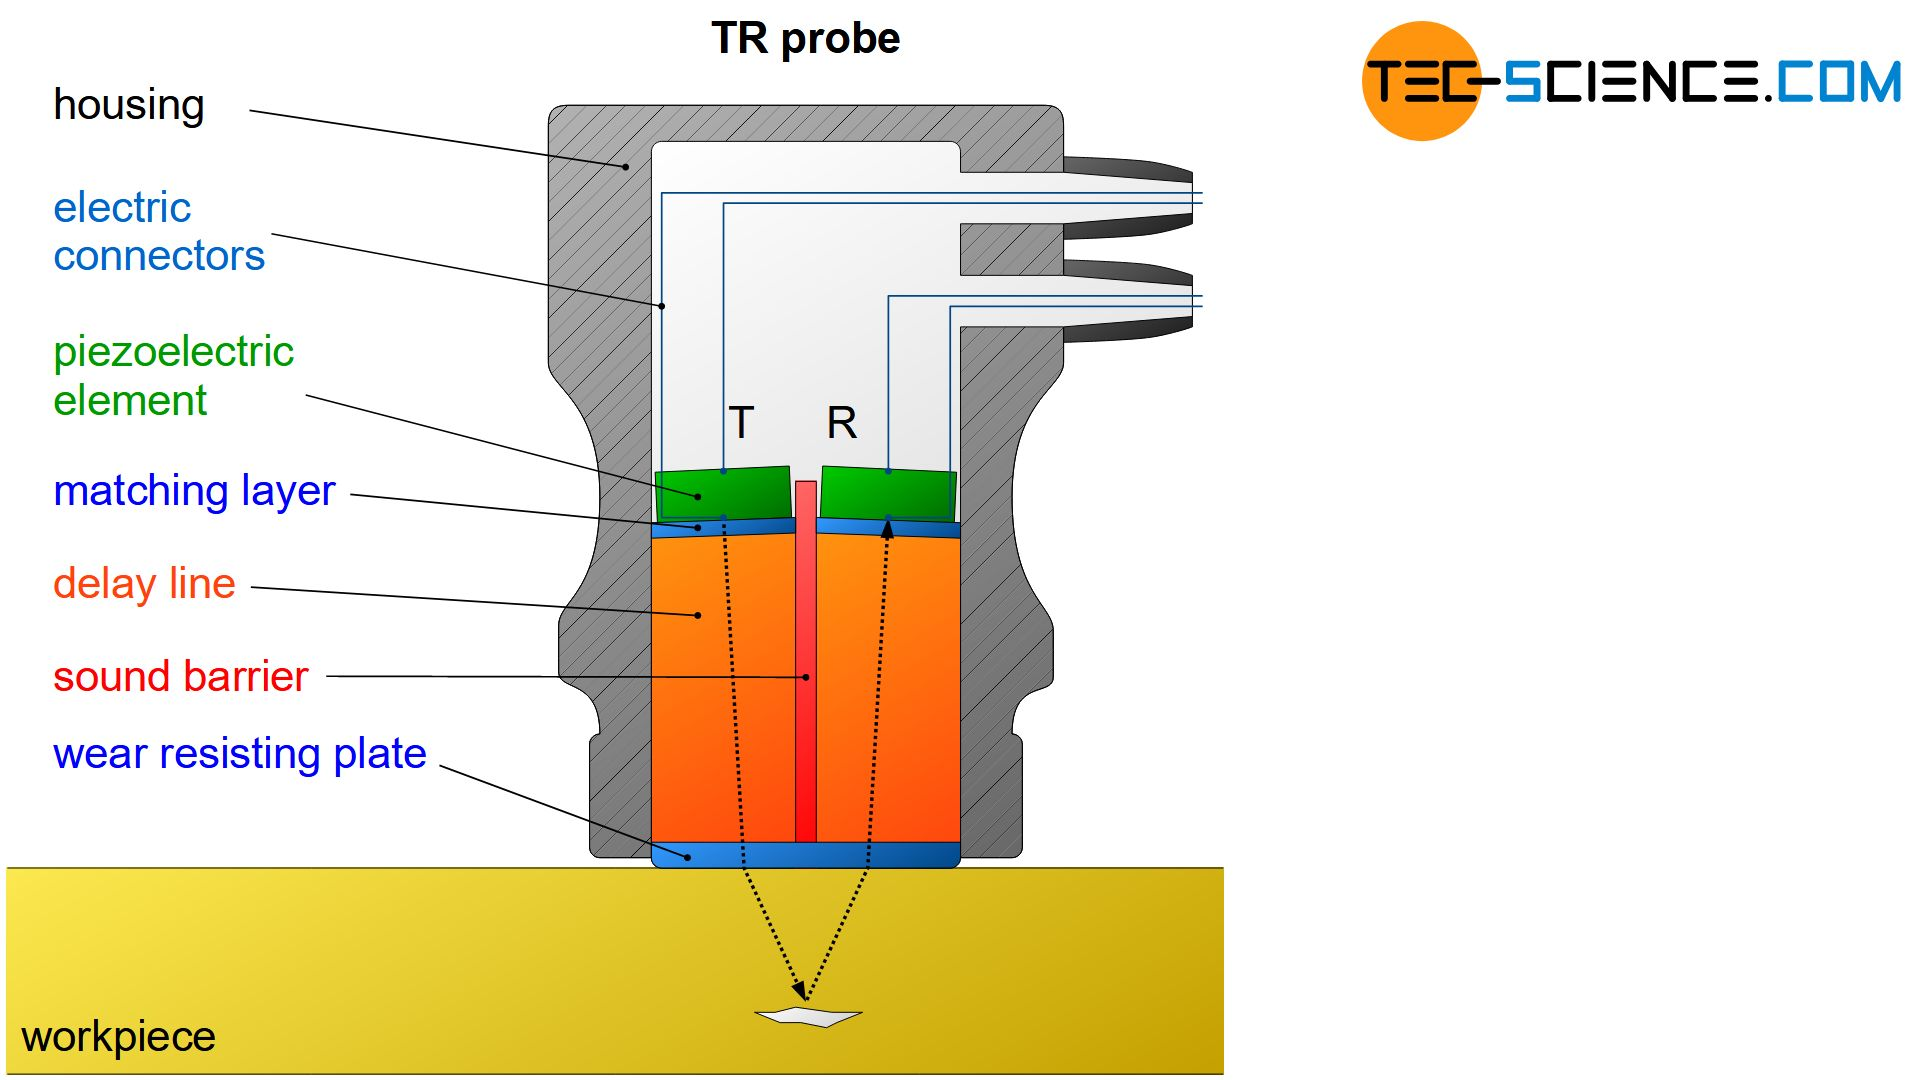 Components of a TR probe